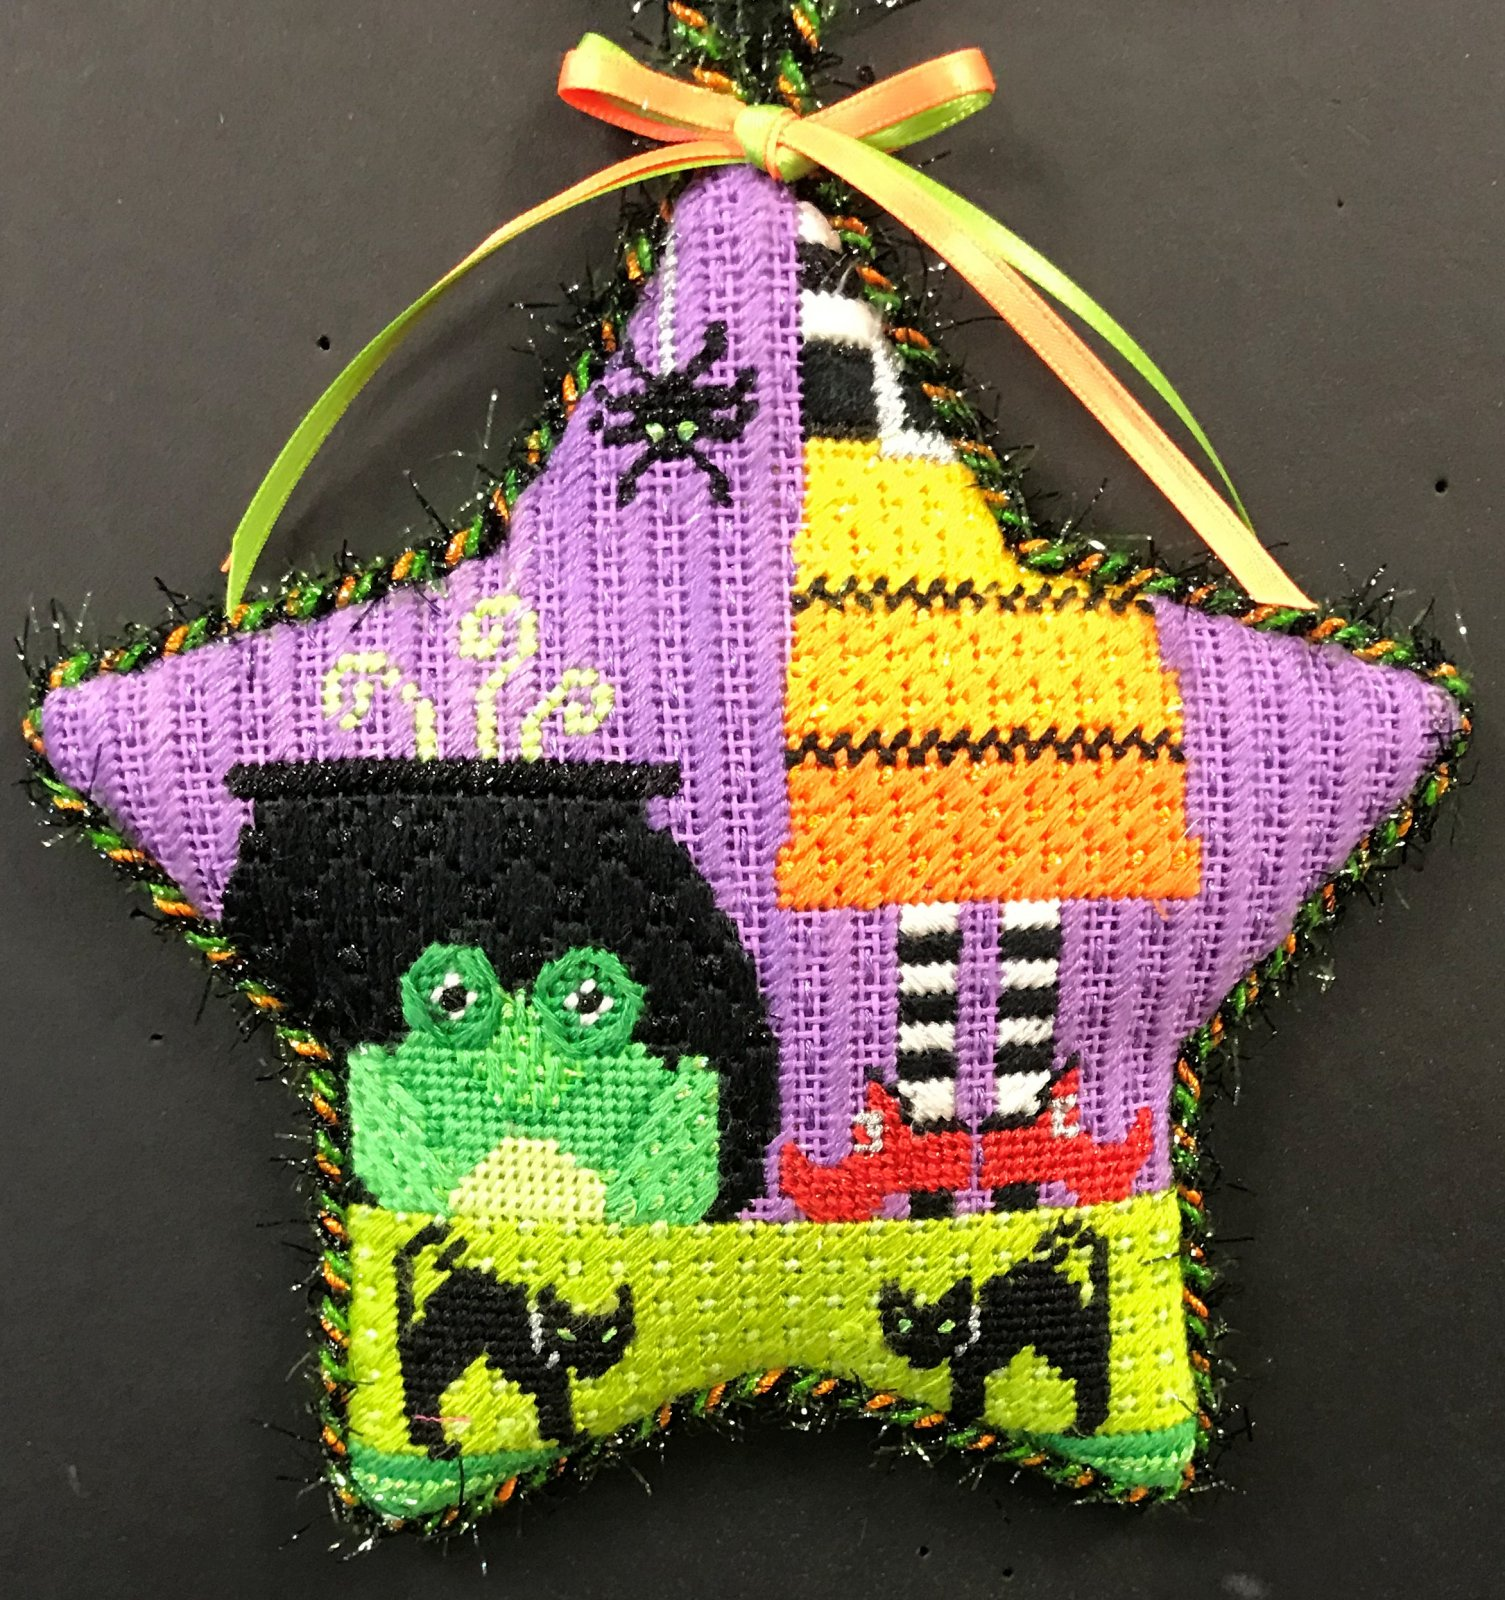 Halloween Star Ornament - Stitched by Cindy C.